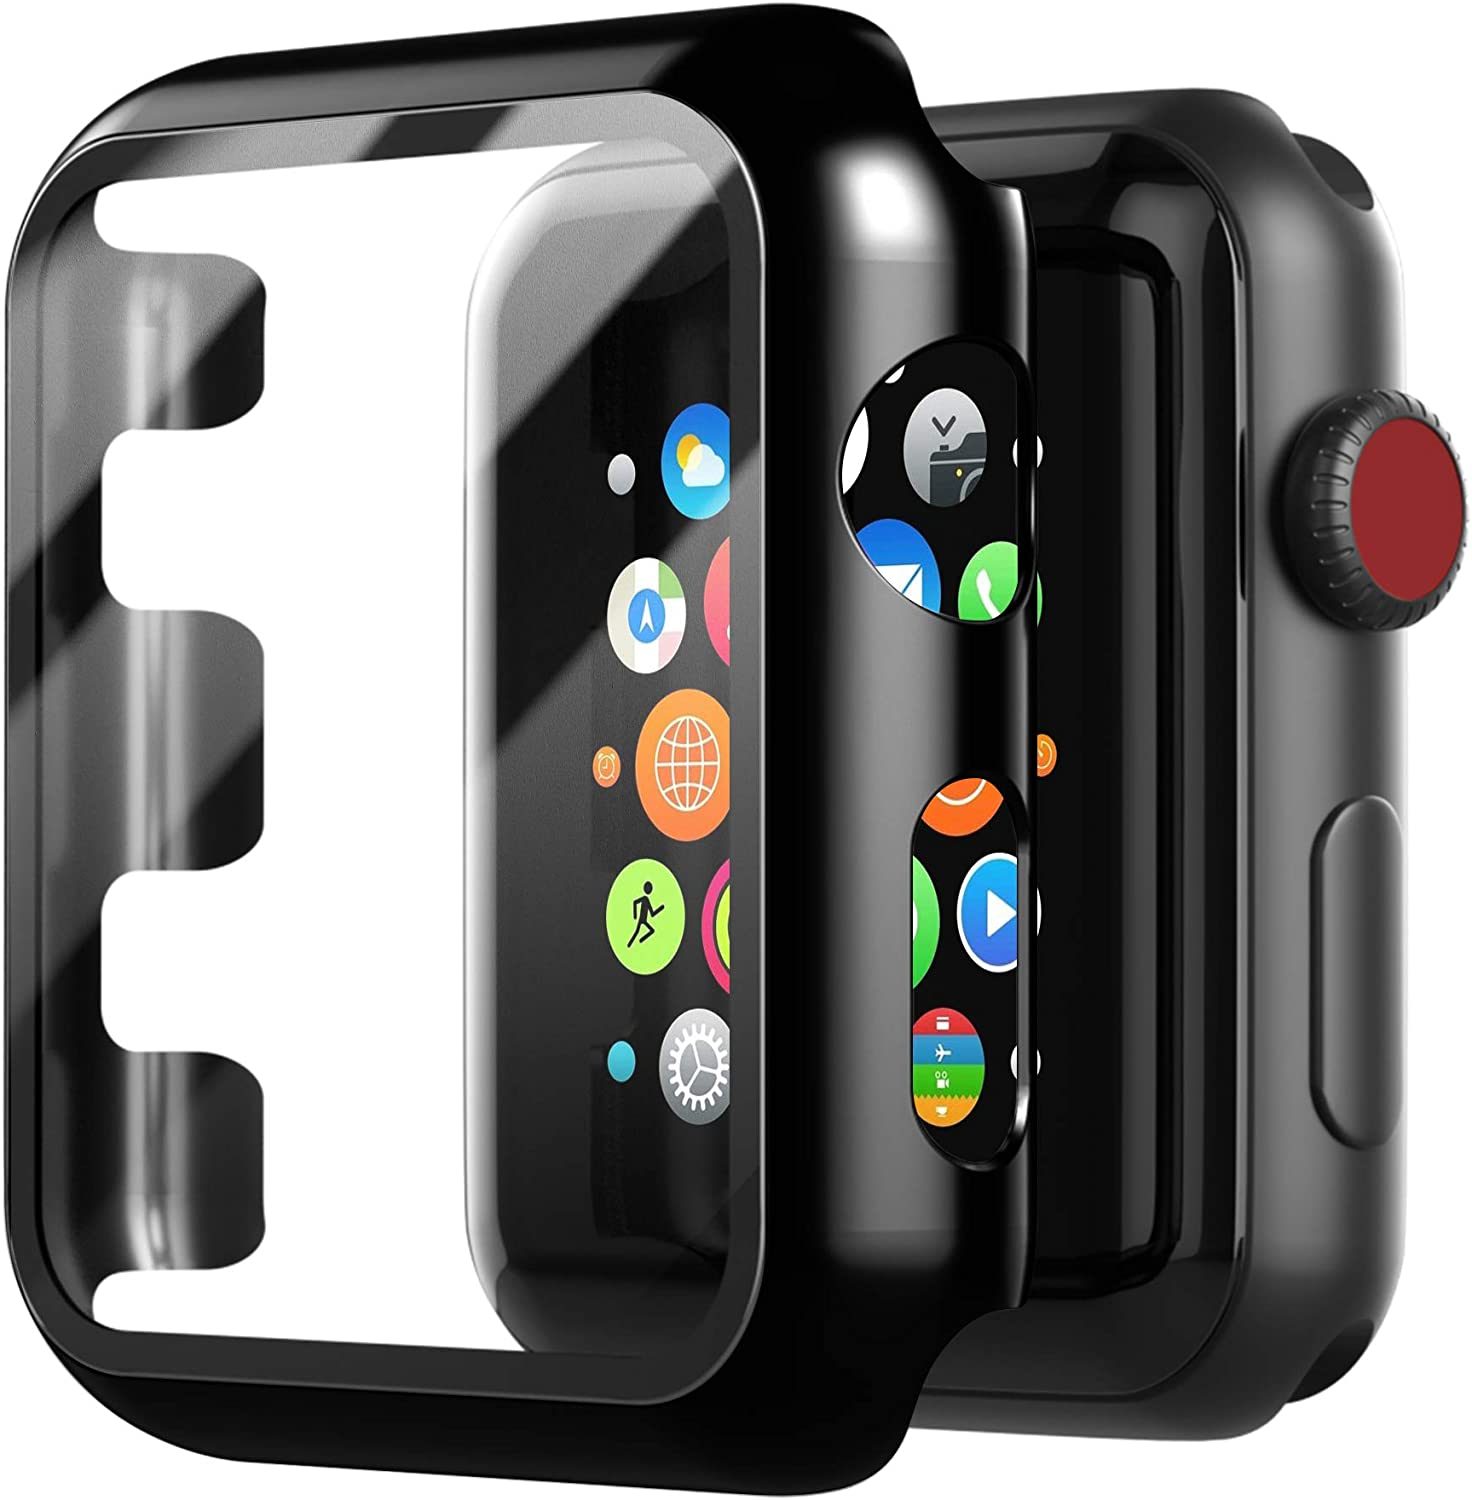 Juyya Compatible for Apple Watch Series 1/2/3 Case,Apple Watch Screen Protector Tempered Glass iWatch Hard PC Shockproof Cover Thin Bumper Full Protection i Watch Accessories (38mm, Black)